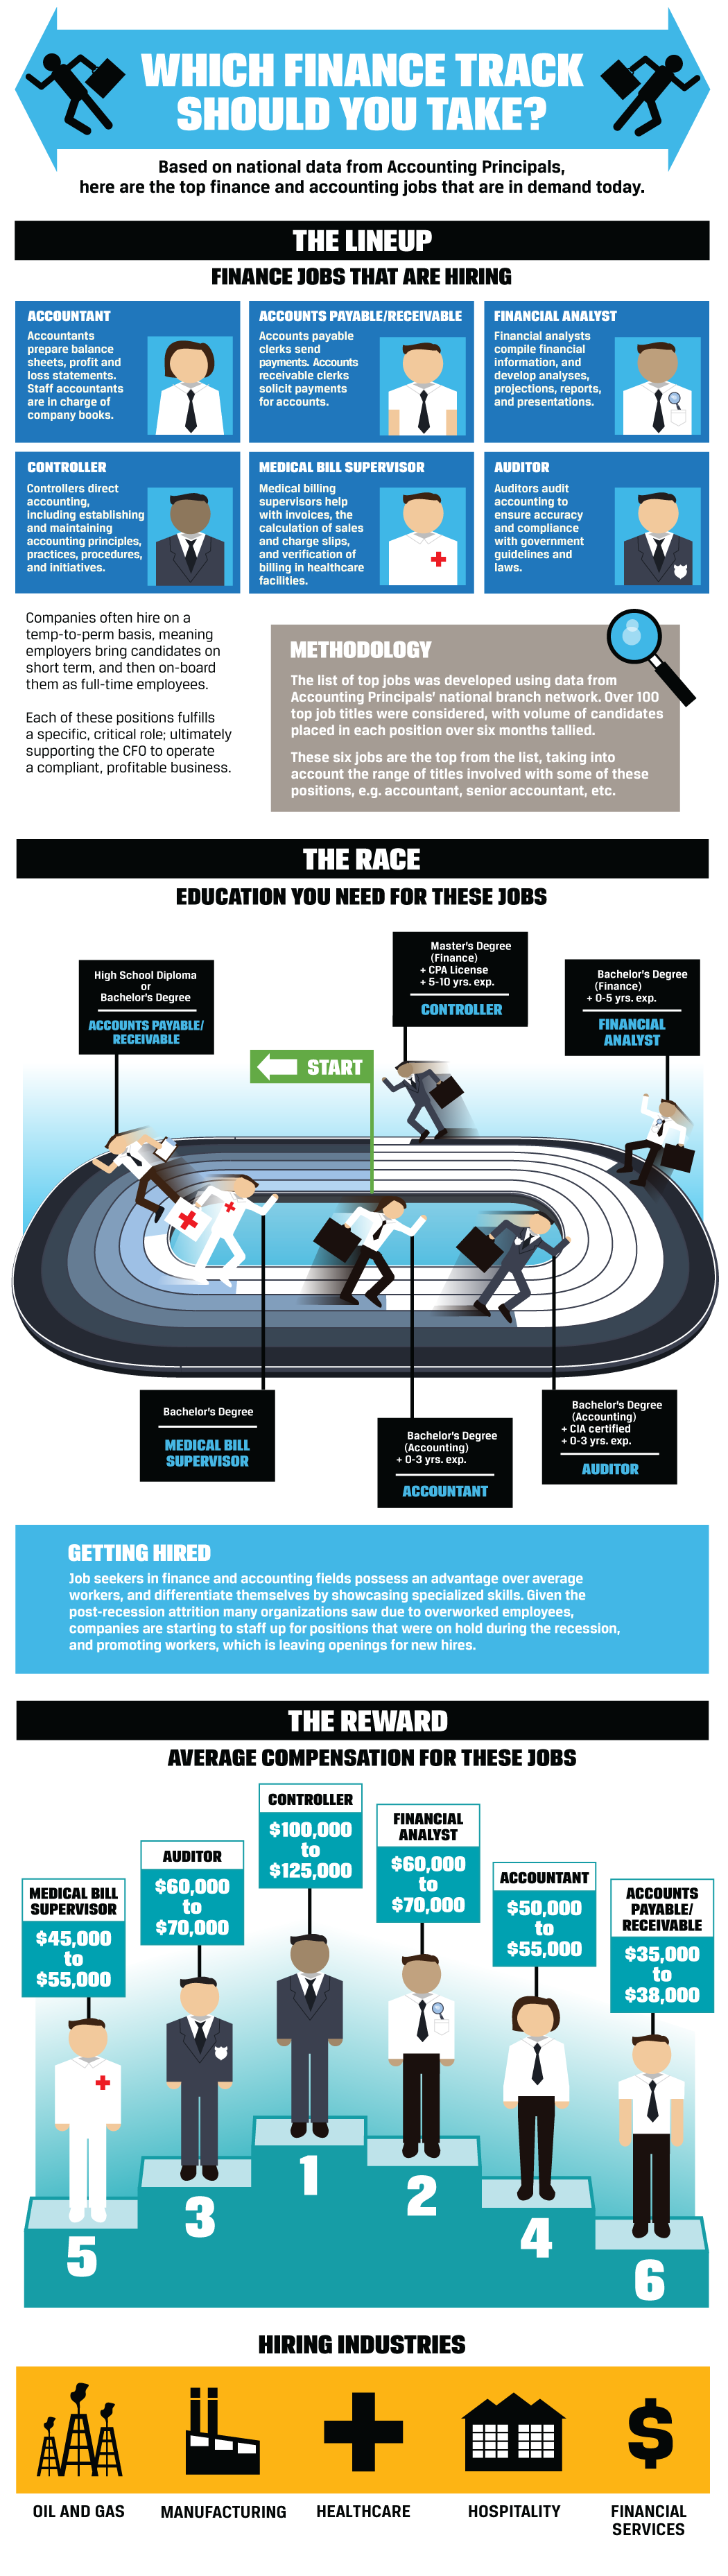 Which finance track should you take infographic: the lineup, the race, the reward